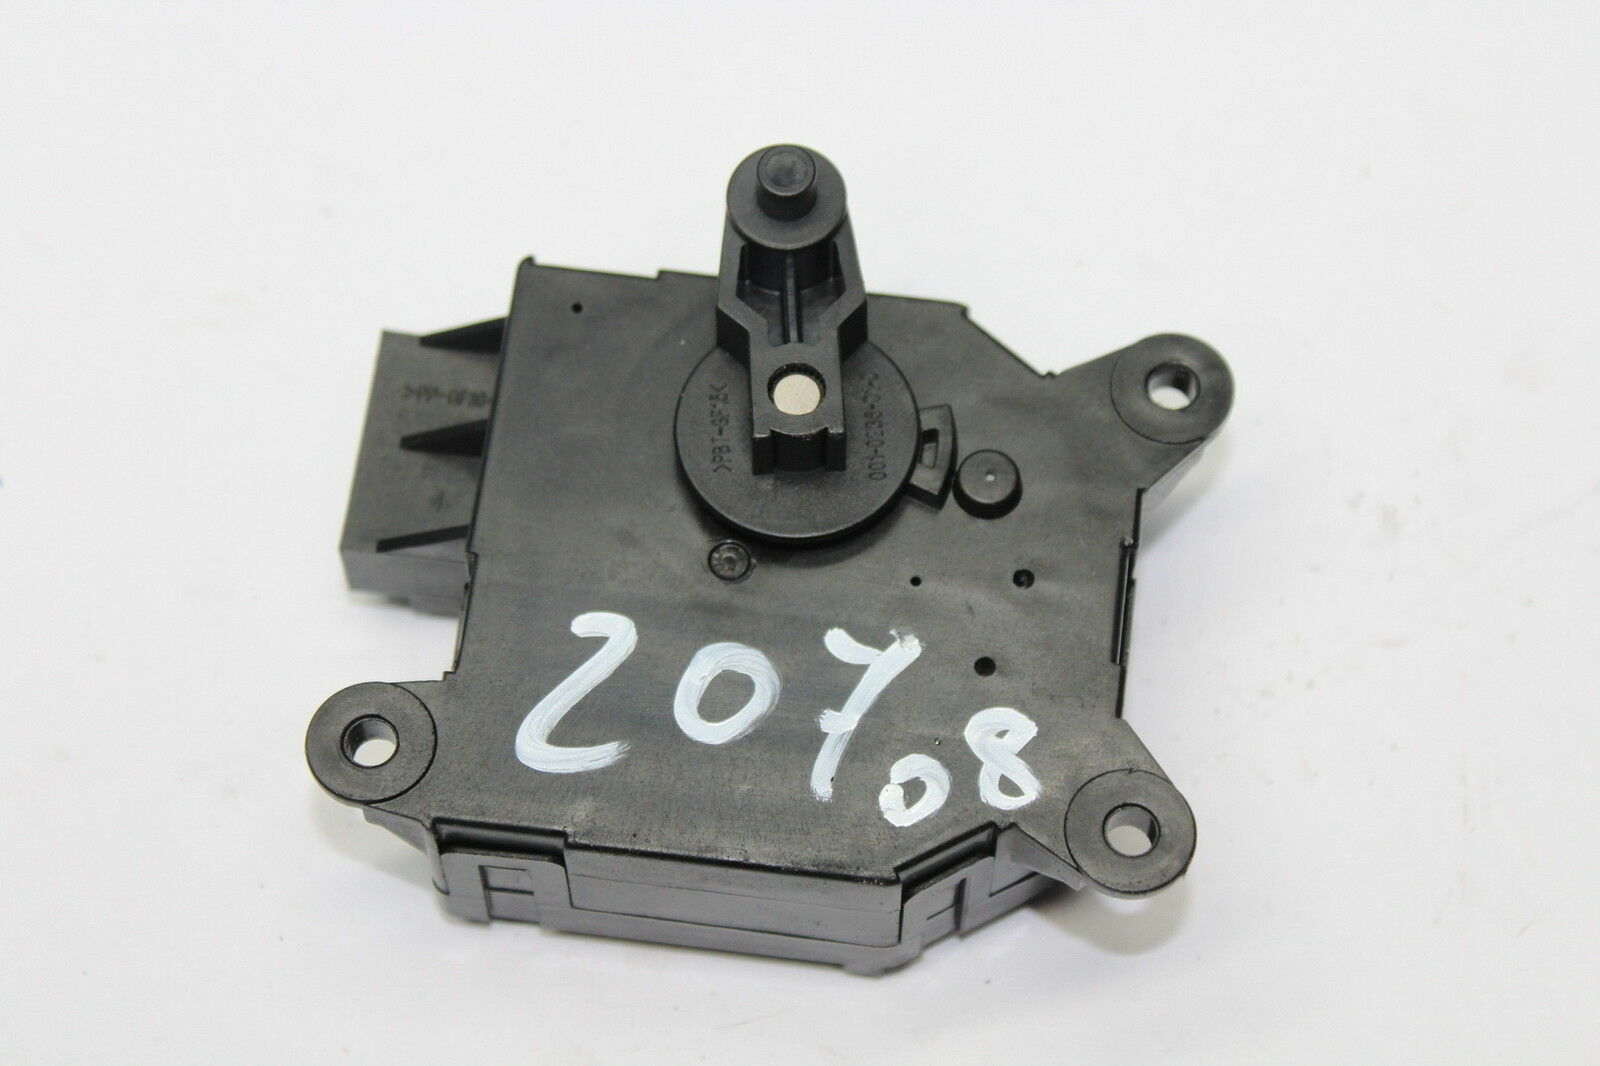 VALEO Air Conditioning Actuator Fits RENAULT Megane Sedan 7701048356